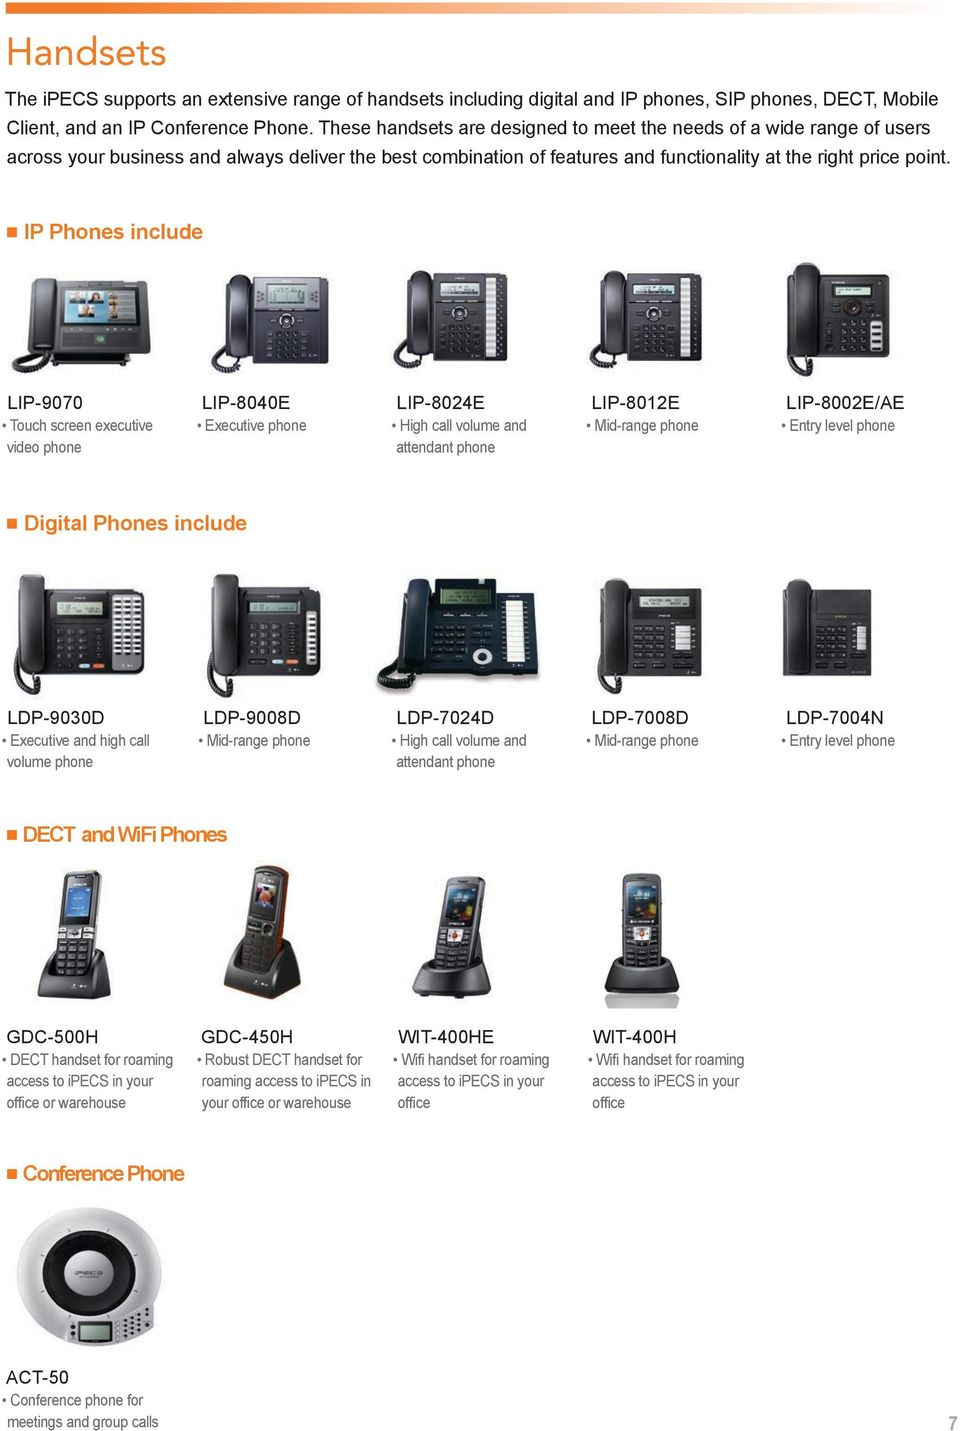 IP Phones include LIP-9070 Touch screen executive video phone LIP-8040E Executive phone LIP-8024E High call volume and attendant phone LIP-8012E Mid-range phone LIP-8002E/AE Entry level phone Digital